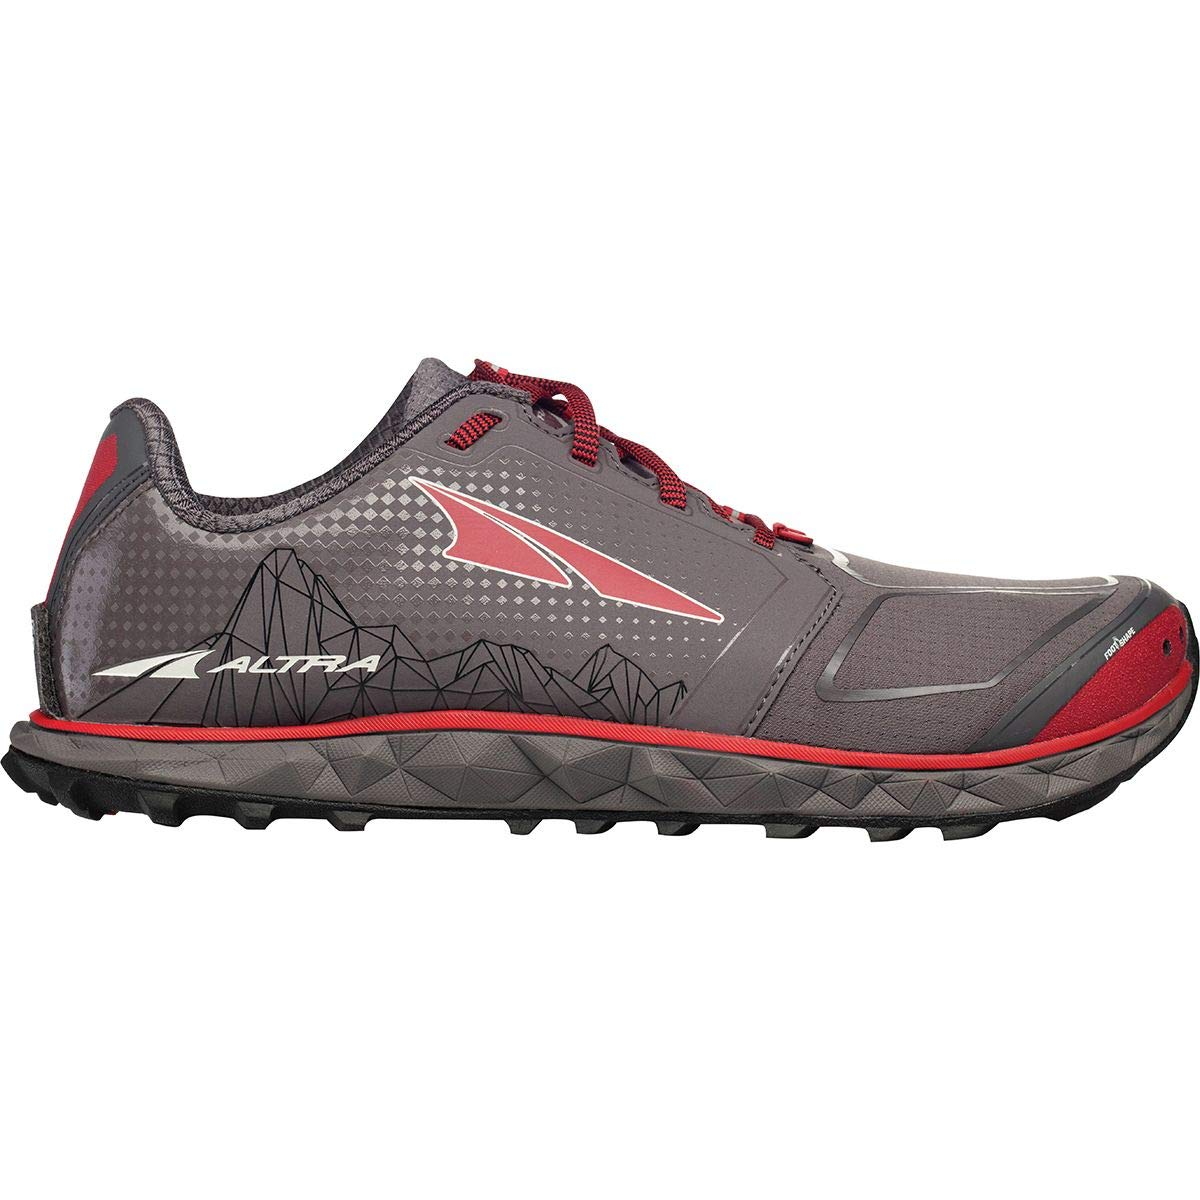 本物の [オルトラ] Superior メンズ ランニング B07NZLRL22 Superior 4.0 4.0 Trail Running Shoe [並行輸入品] B07NZLRL22 14, デンキヤ2:c40bb44a --- book.officeporto.com